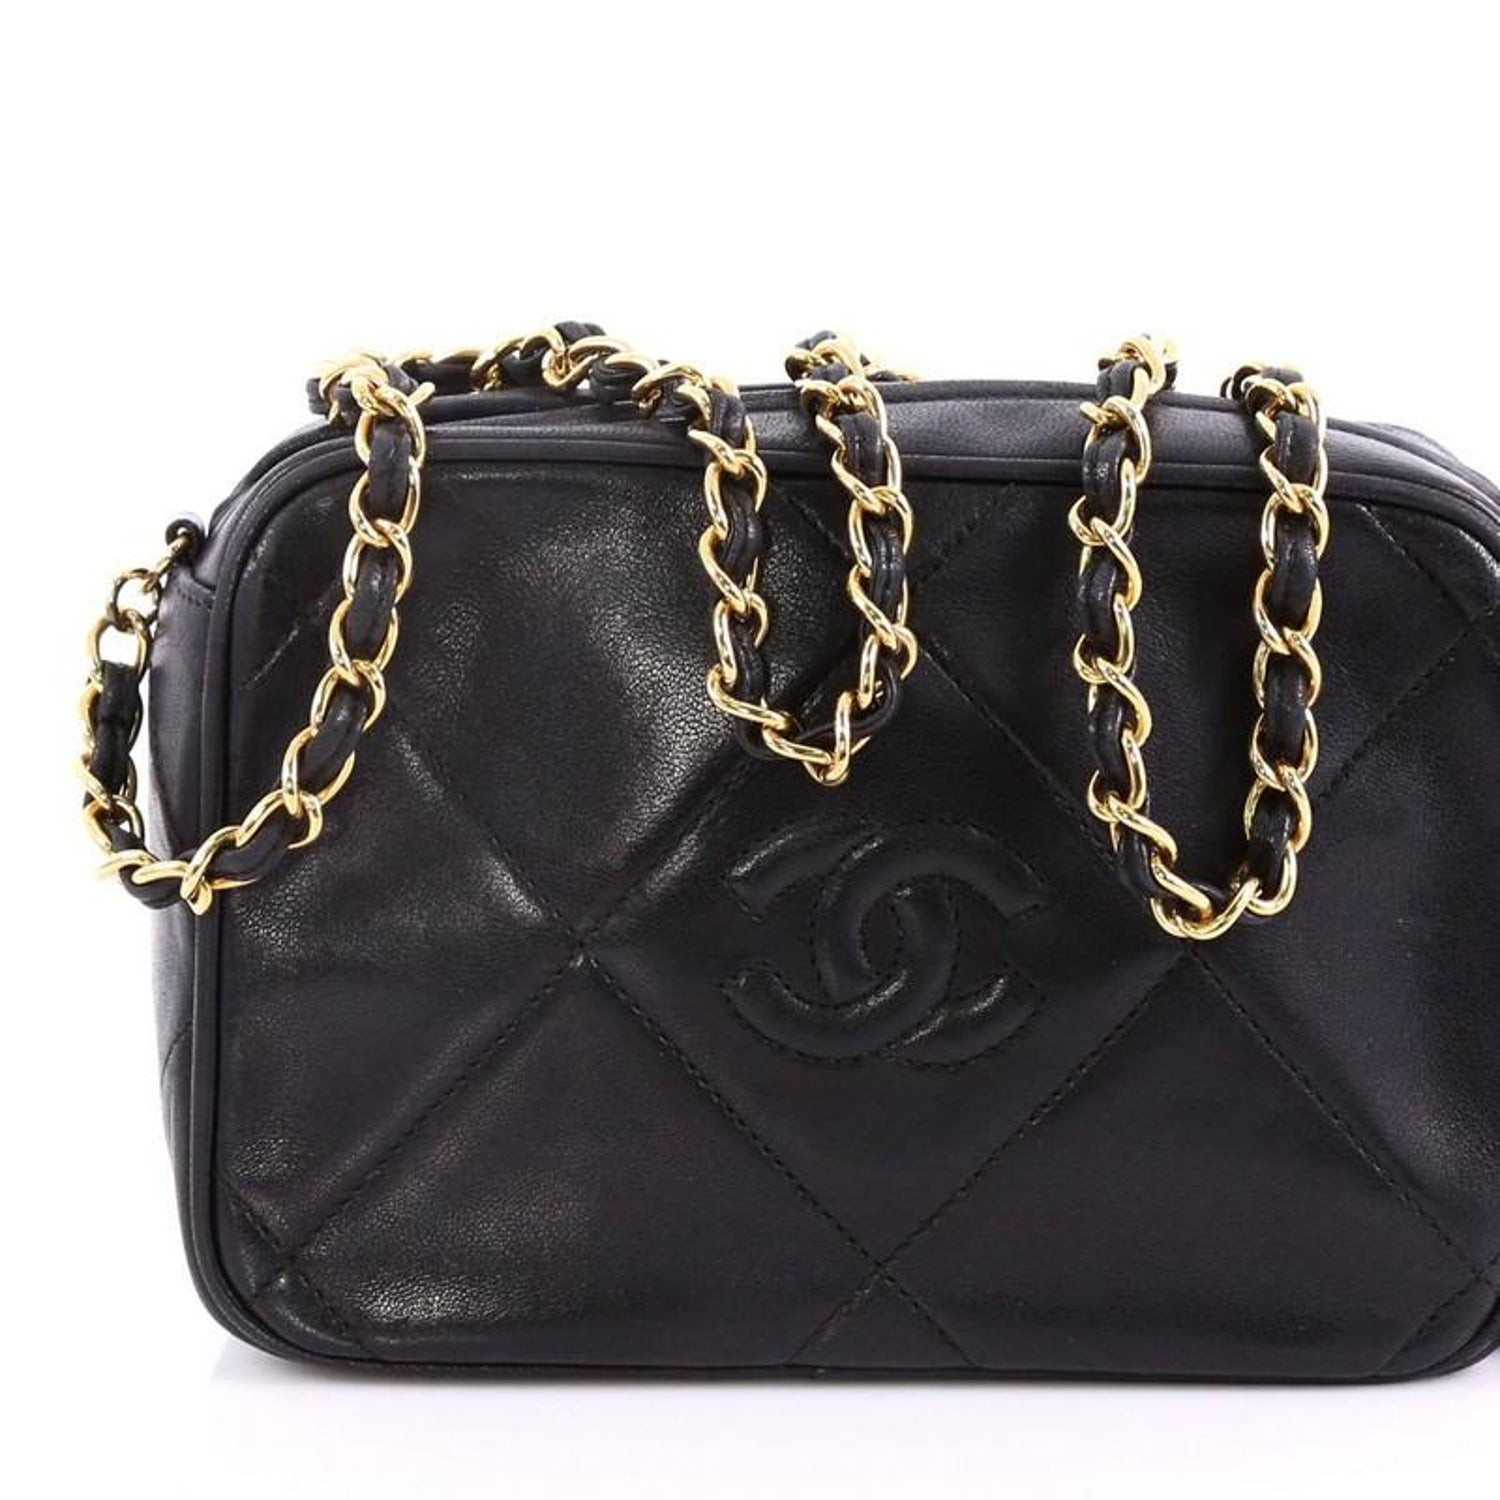 184eb685e436 Chanel Vintage Diamond CC Camera Bag Quilted Leather Small at 1stdibs